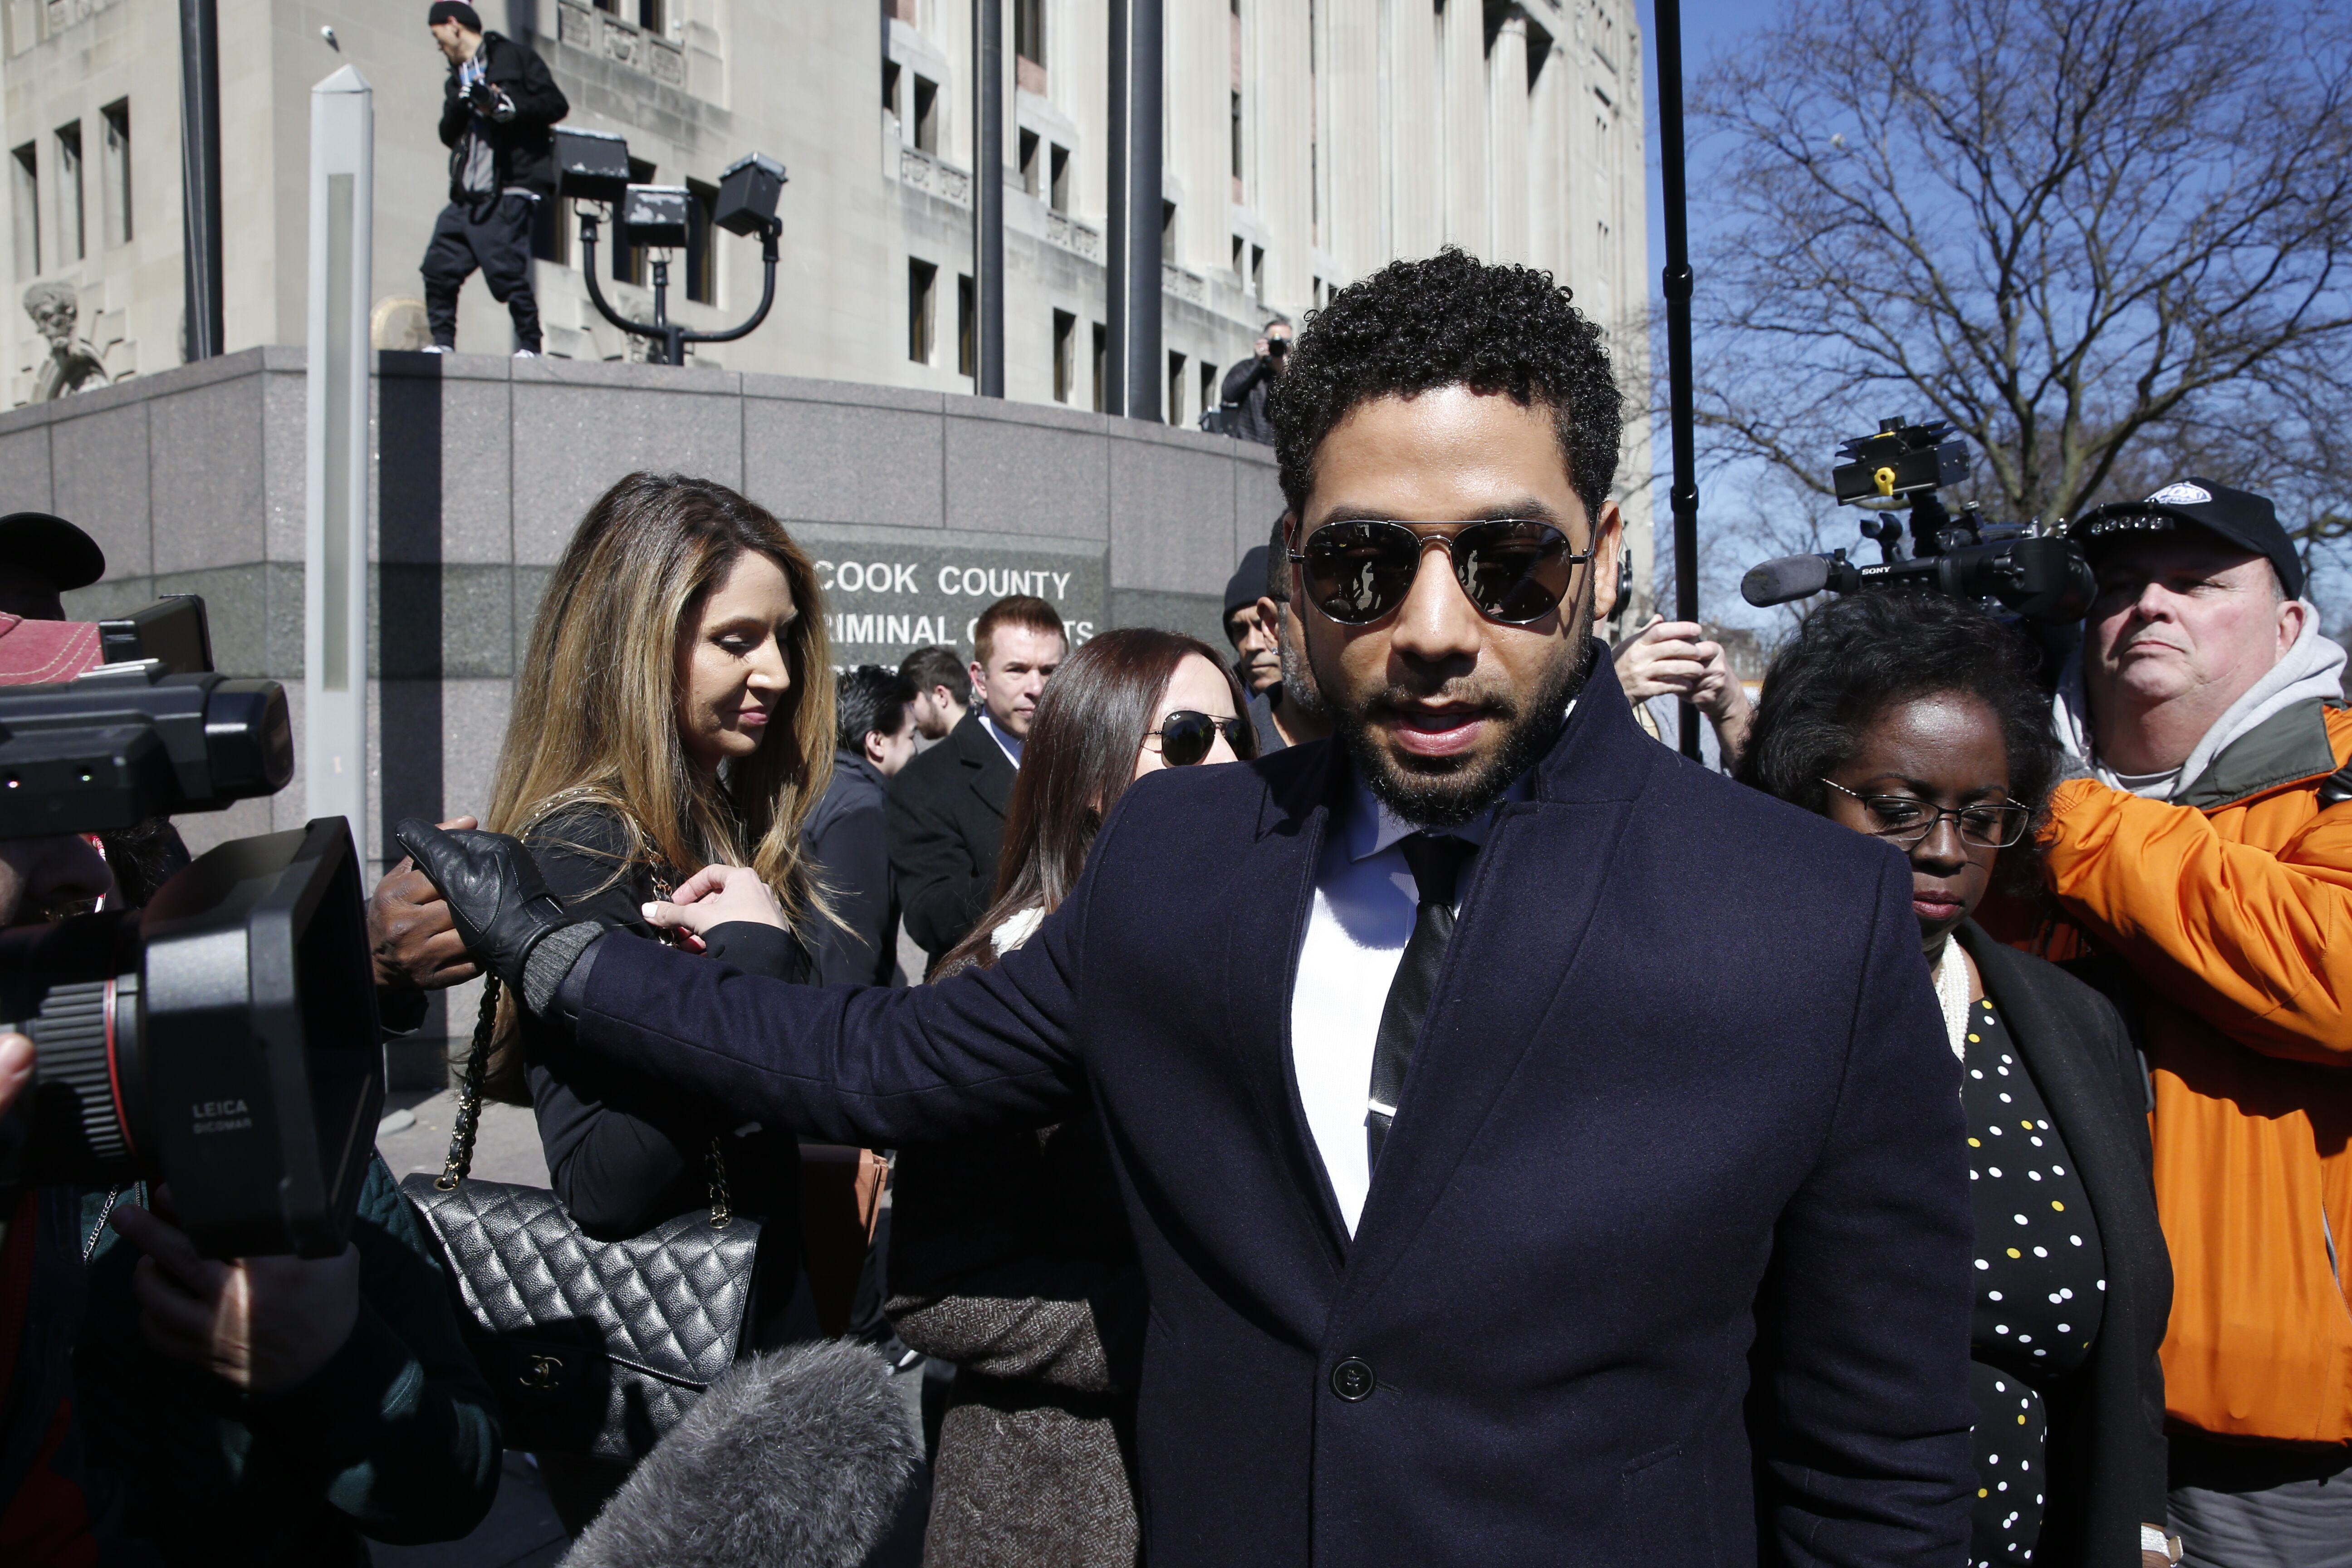 Jussie Smollett outside the Cook County Court | Source: Getty Images/GlobalImagesUkraine